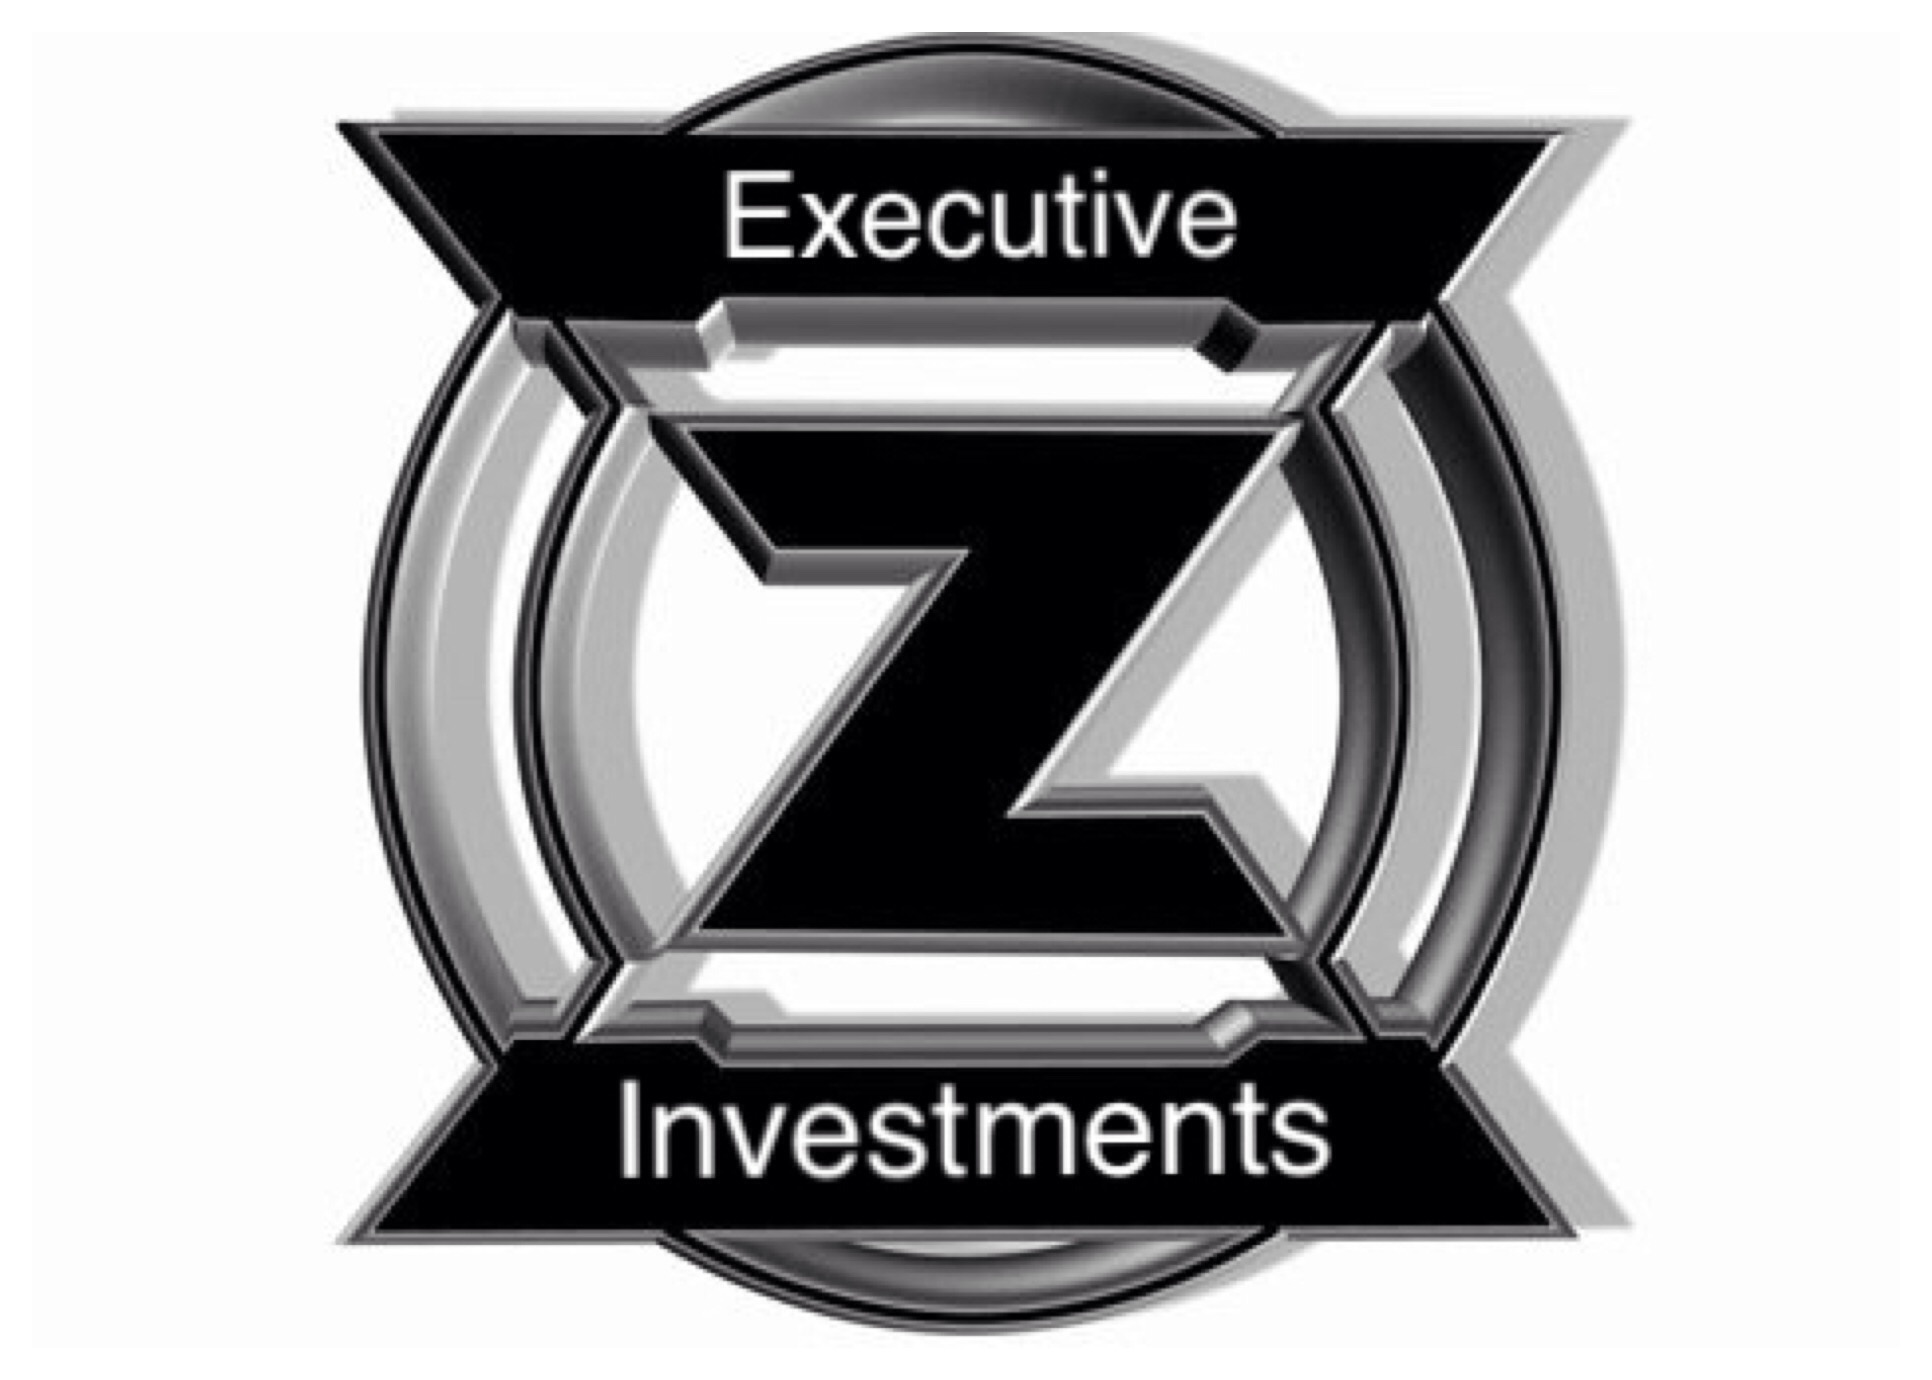 Zoom Executive Investments